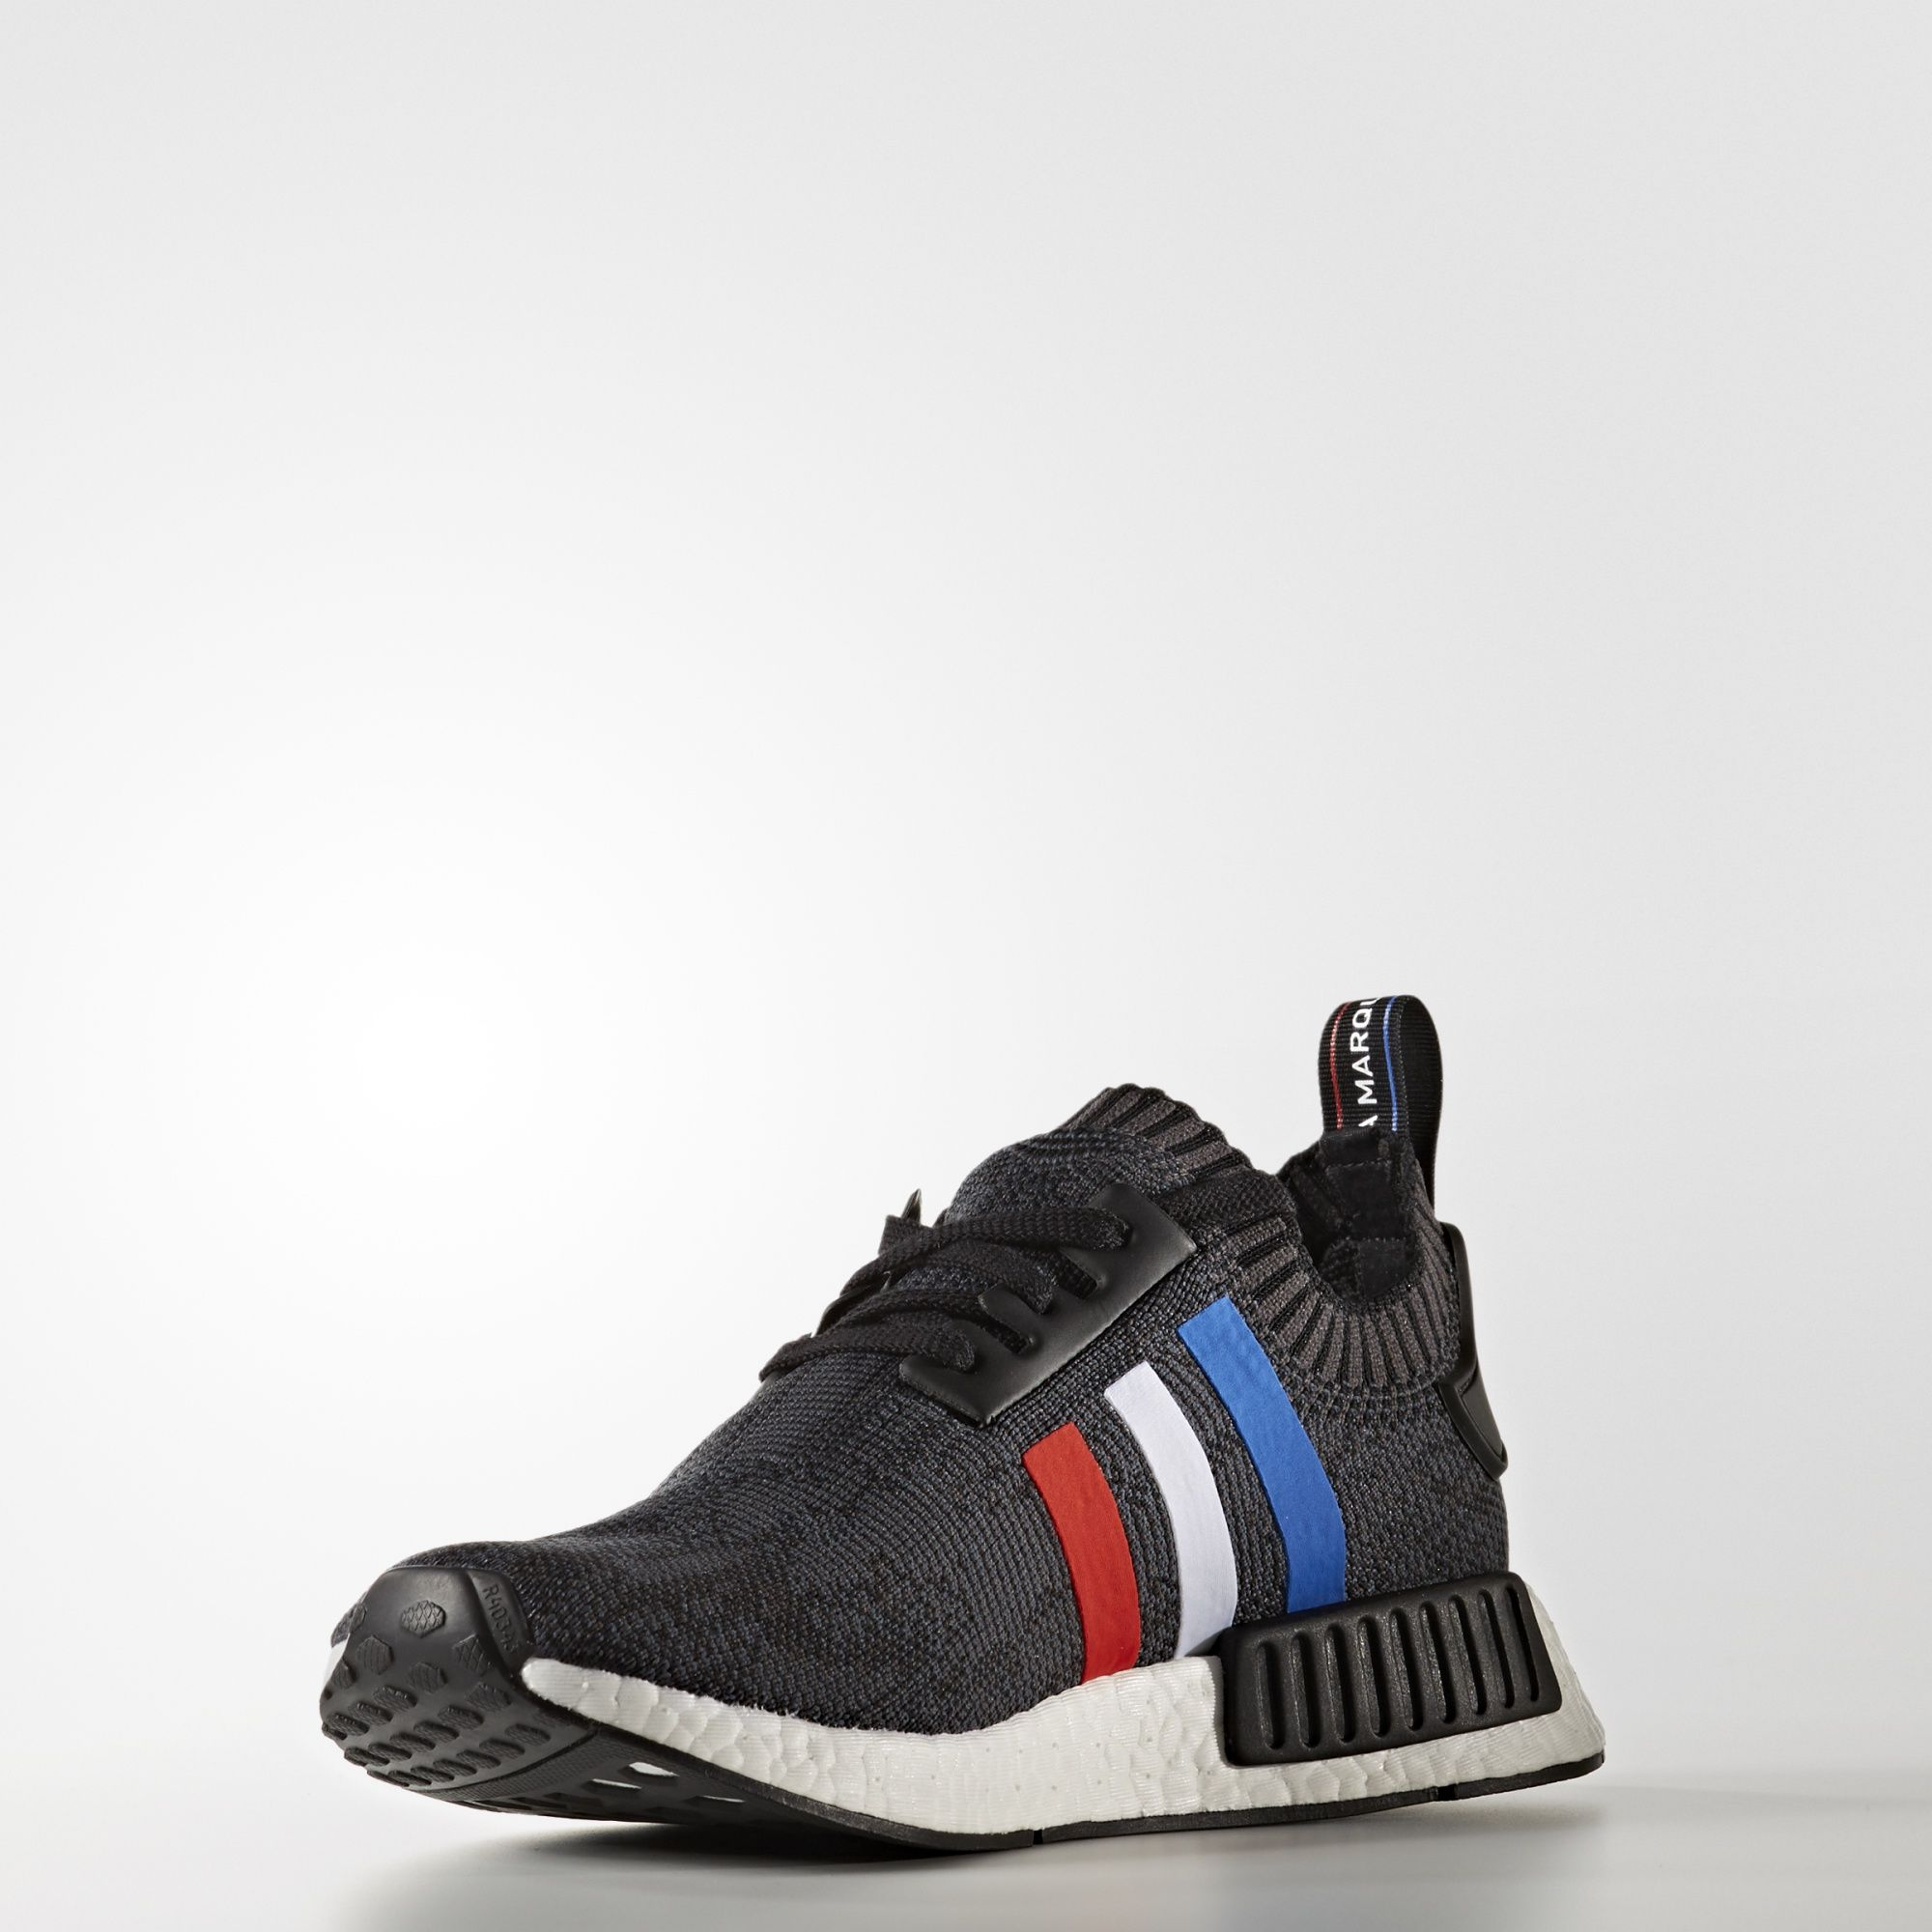 adidas NMD R1 Primeknit Tri Color Black BB2887 2